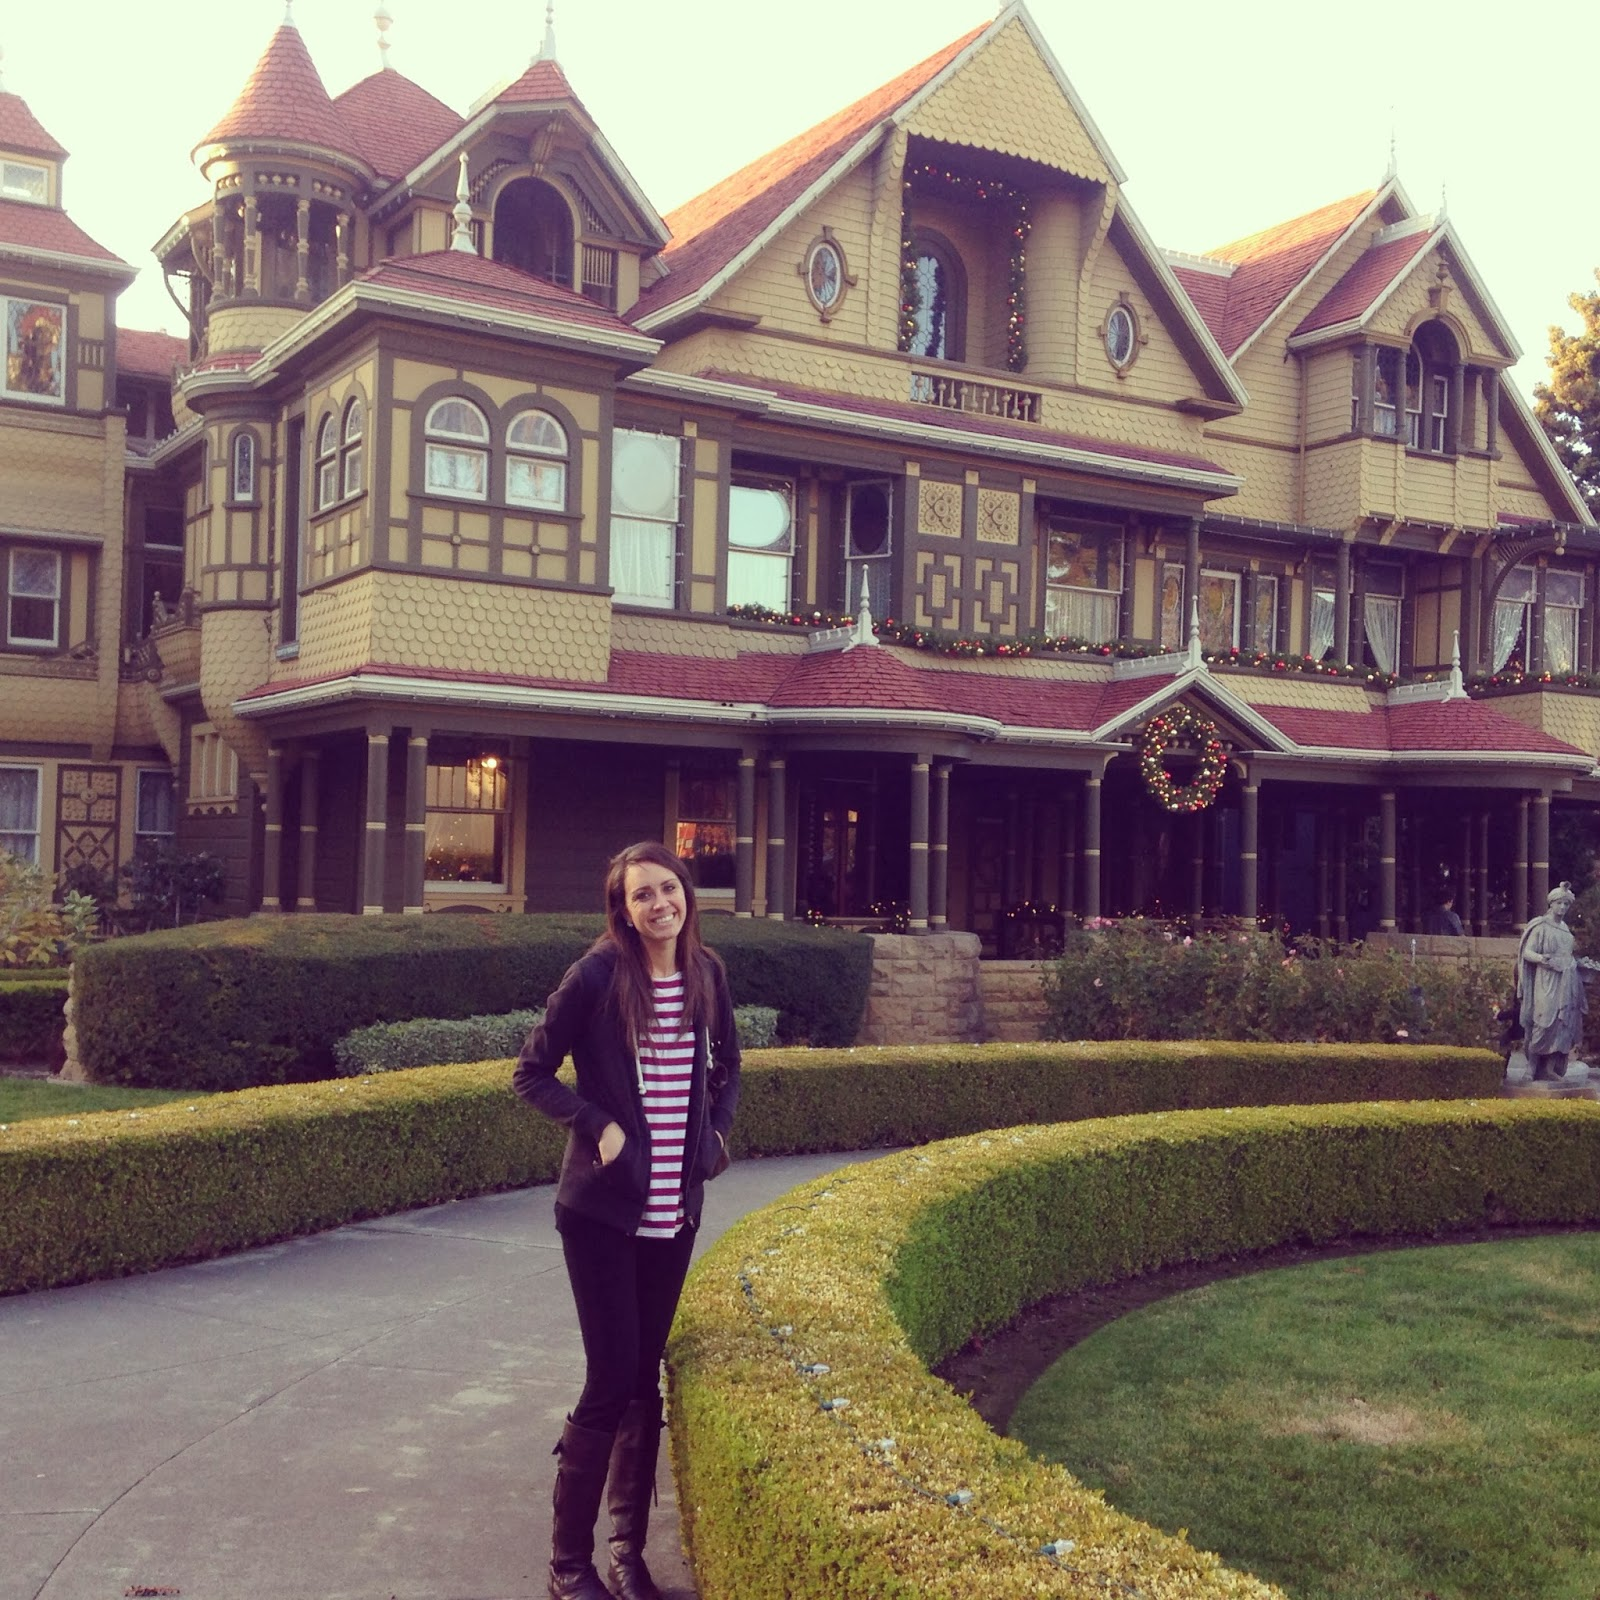 Thayer And Back Again: Winchester Mystery House